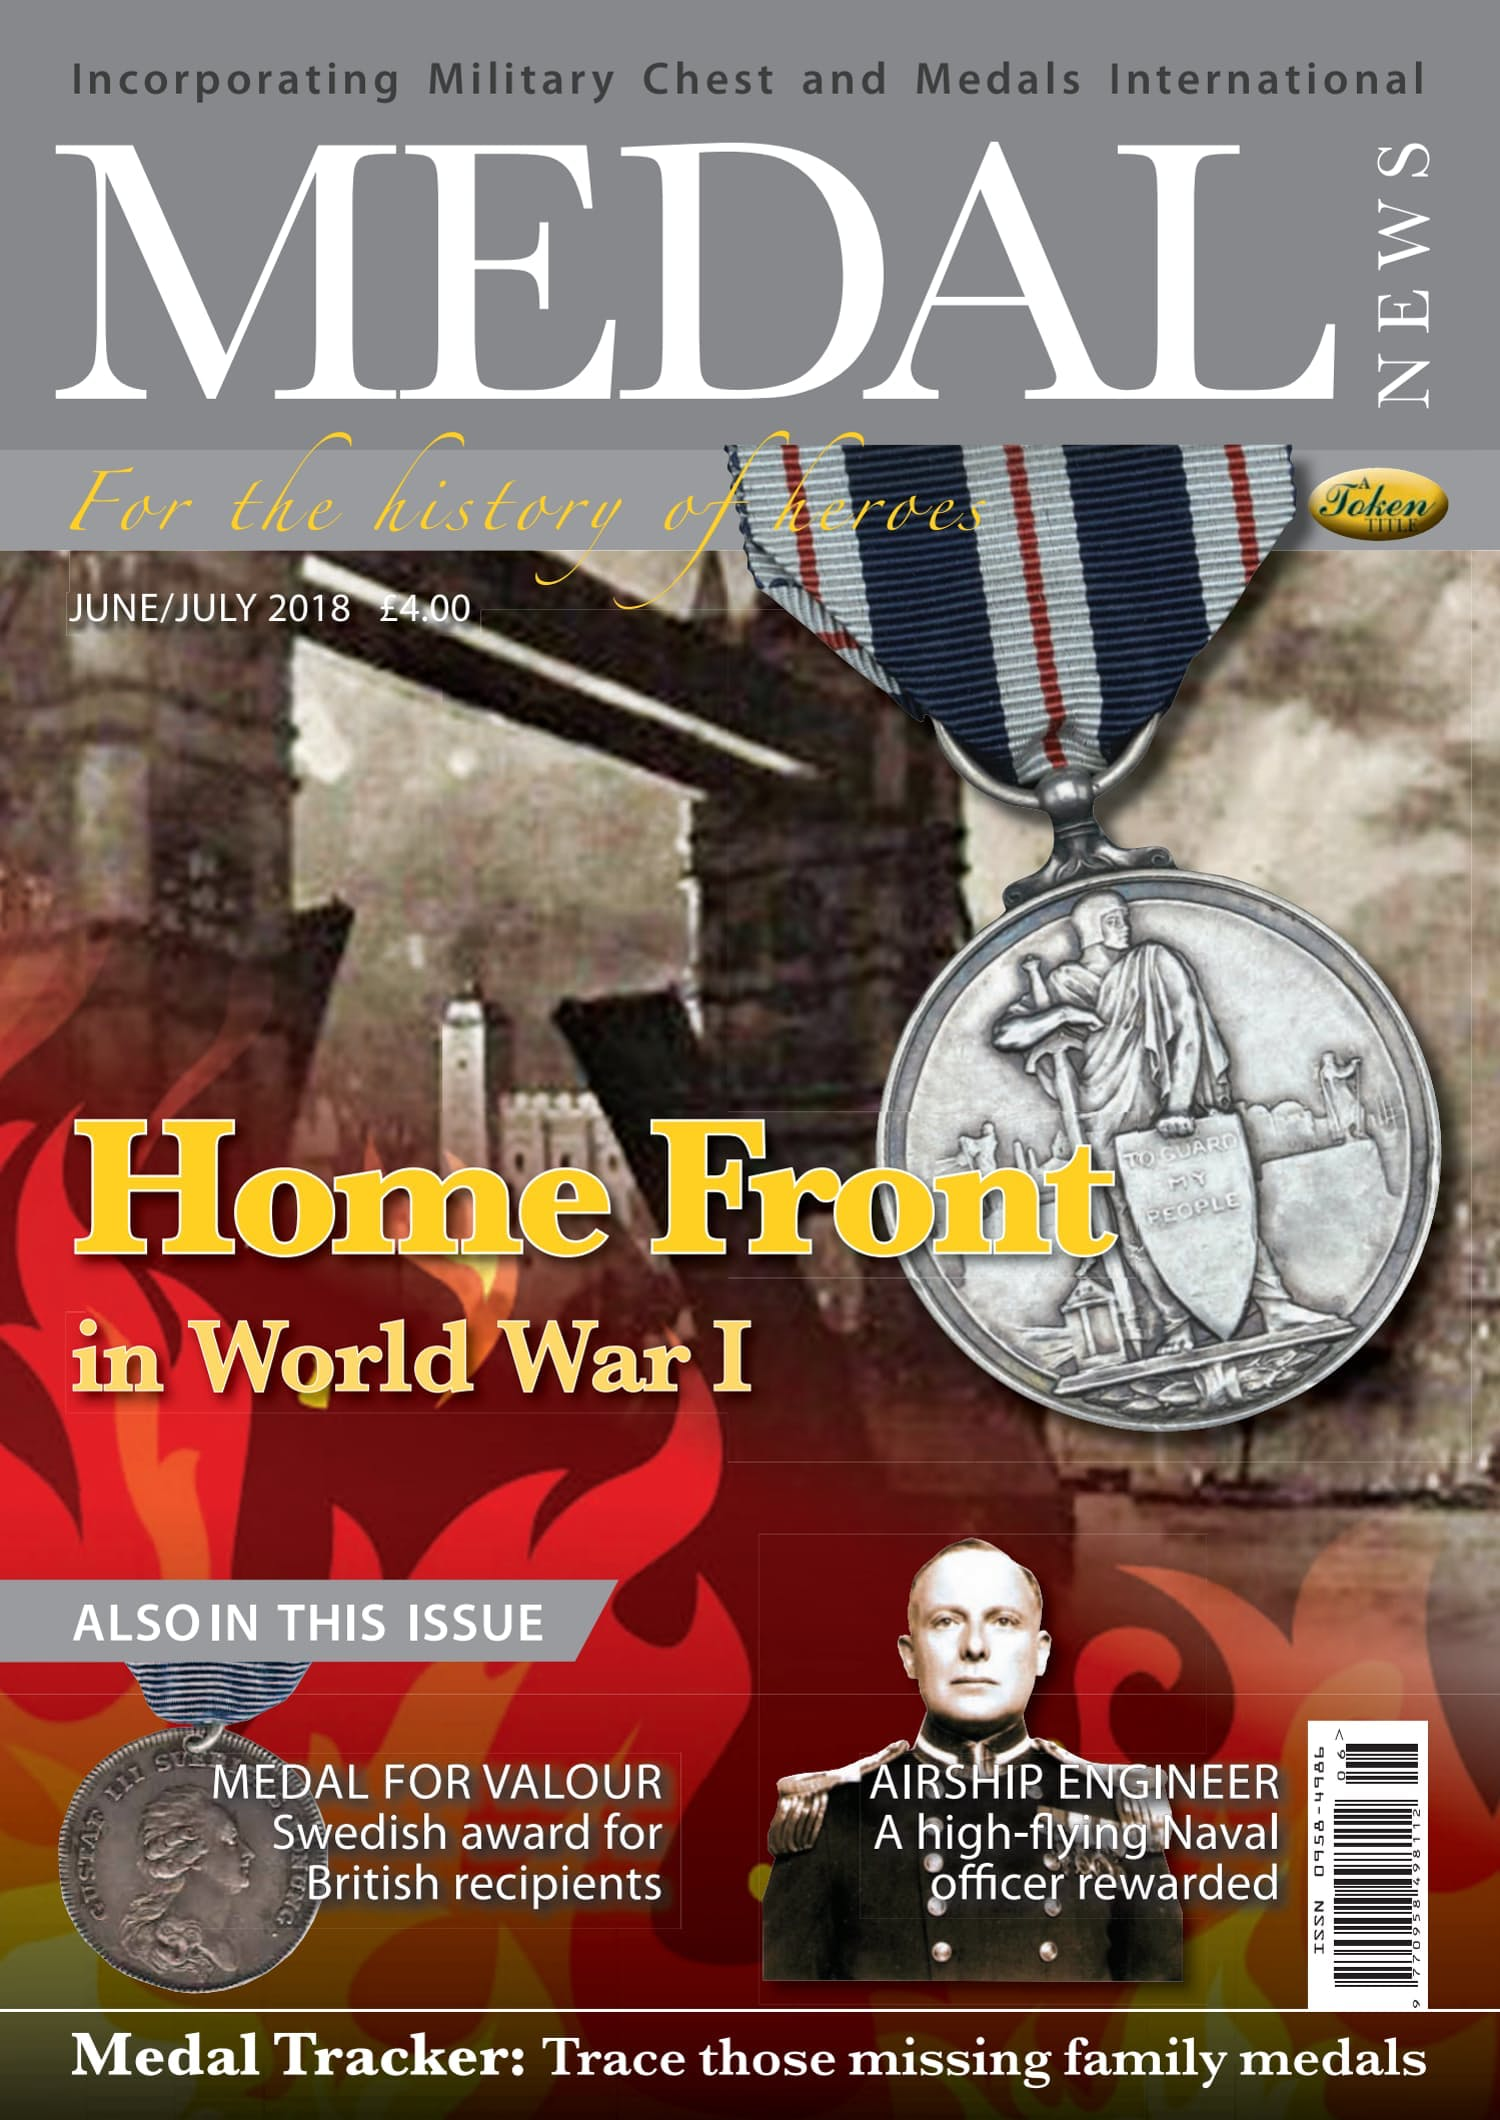 The front cover of Medal News, June 2018 - Volume 56, Number 6